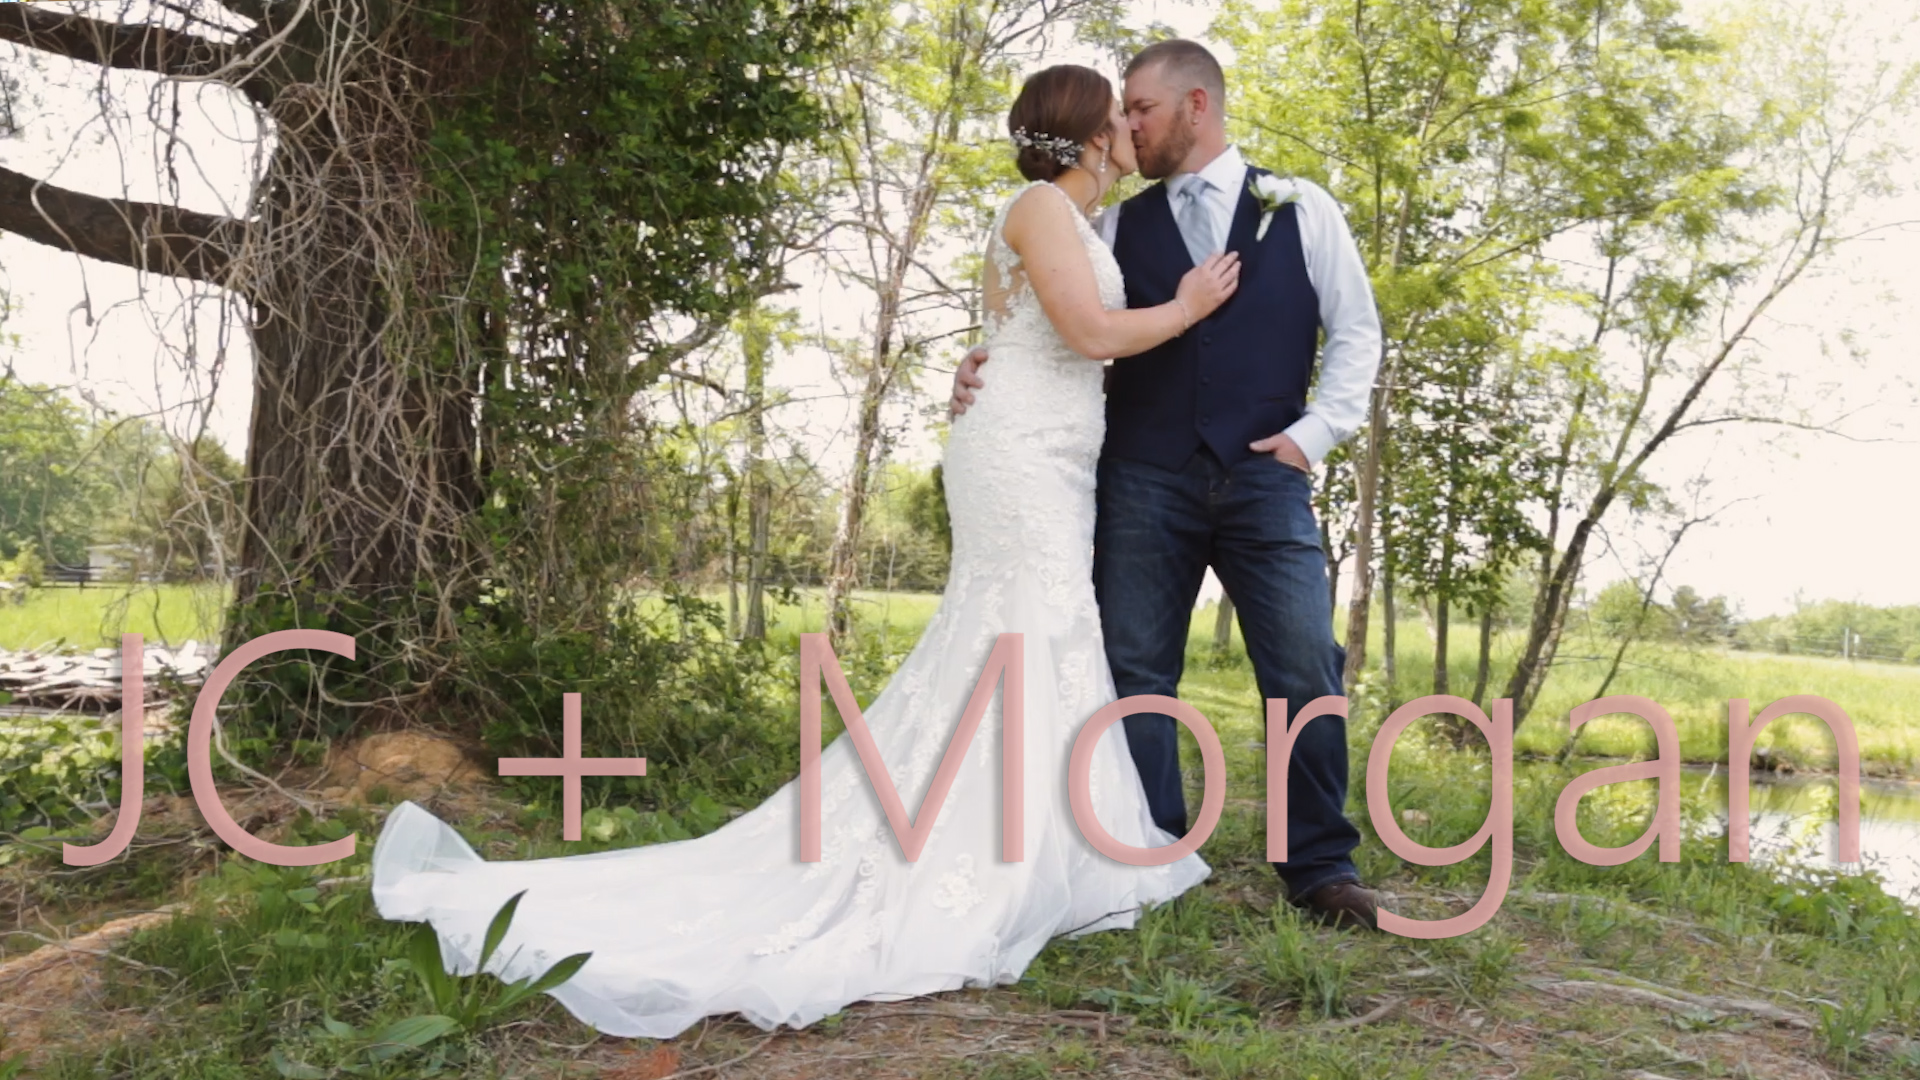 JC + Morgan | Rhodelia, Kentucky | St Theresa Roman Catholic Church